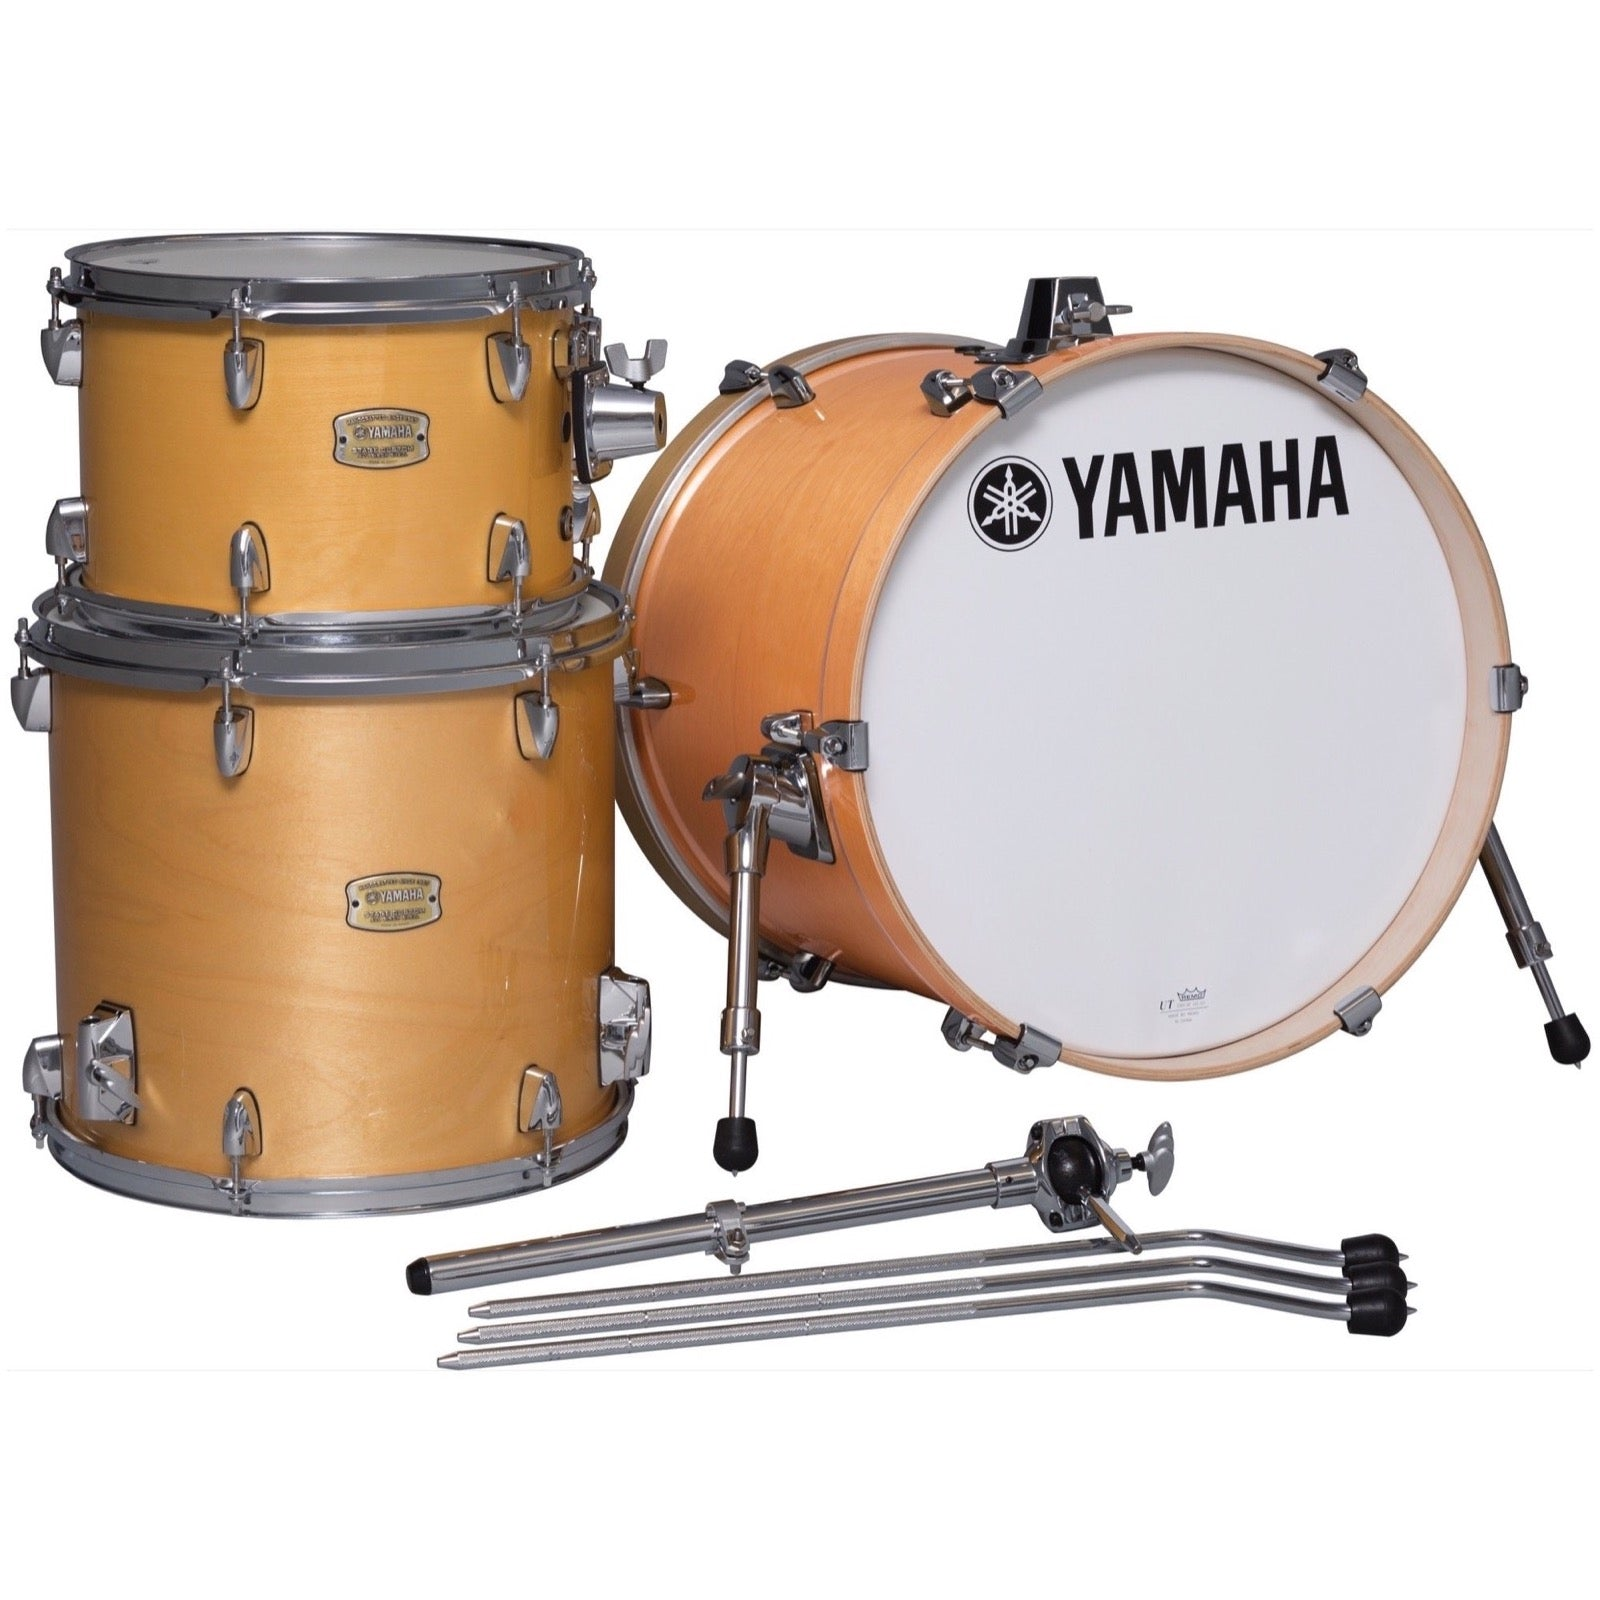 Yamaha SBP8F3 Stage Custom Bop Drum Shell Kit, 3-Piece, Natural